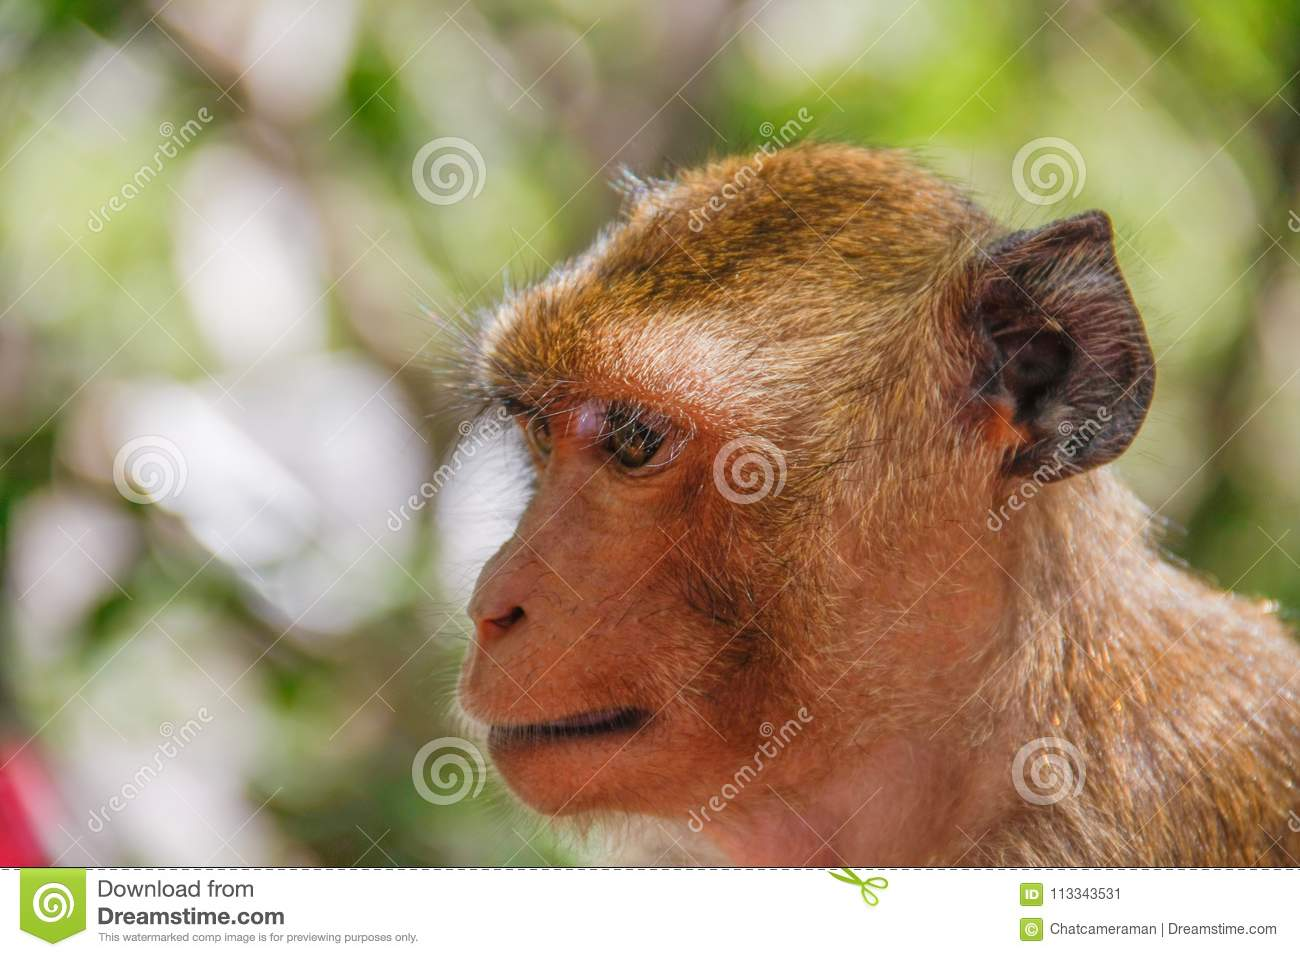 Monkey face and head